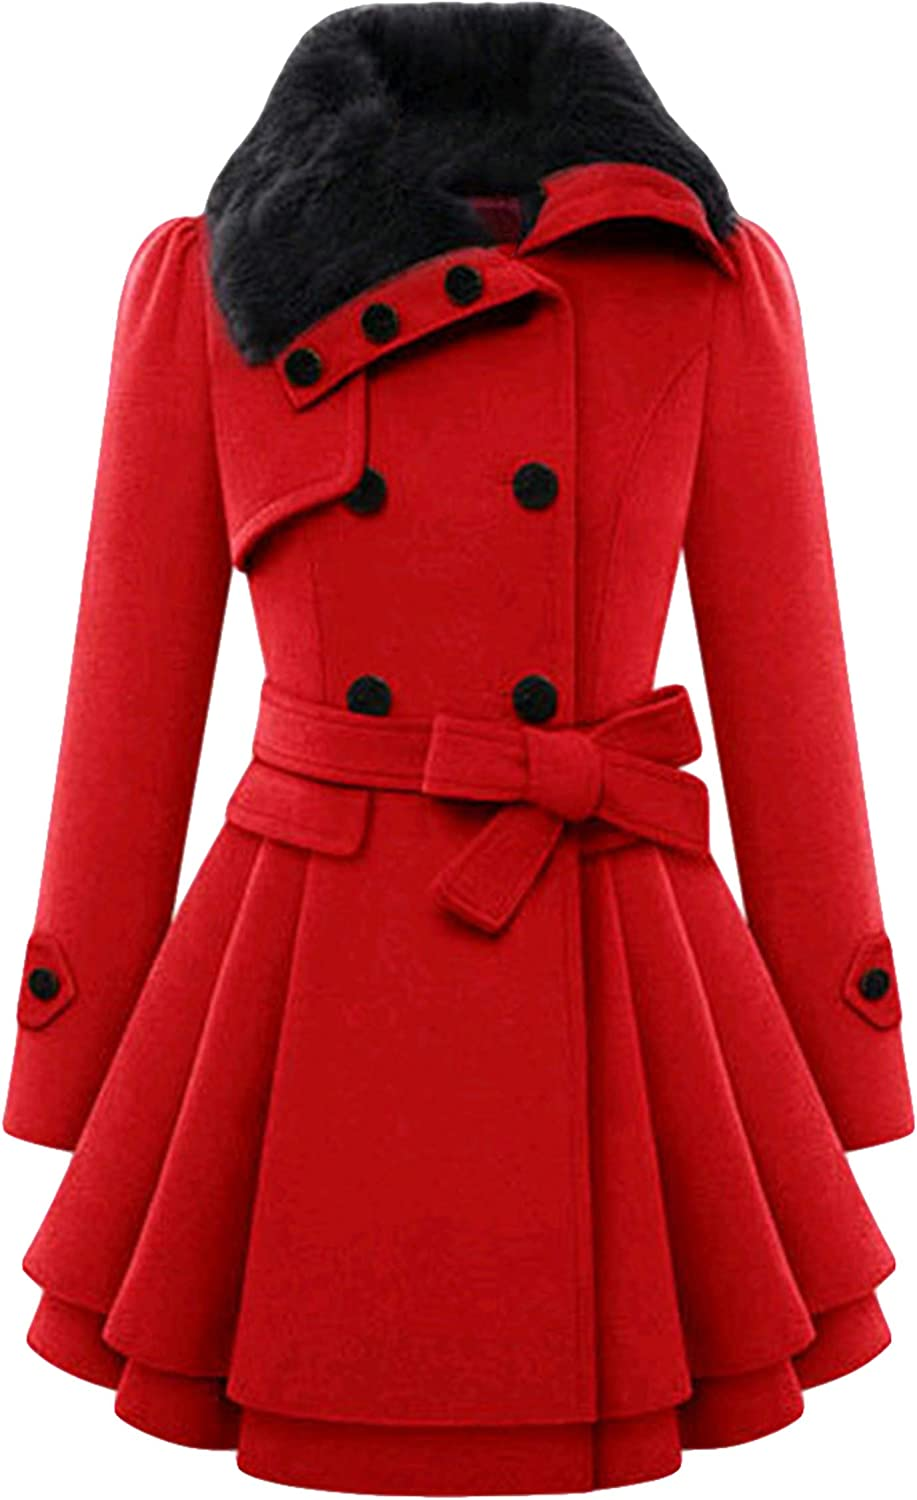 TYQQU Women/'s Lapel Collar Double-Breasted Hooded Pea Coat Plaid Mid Length Belted Jackets with Pockets